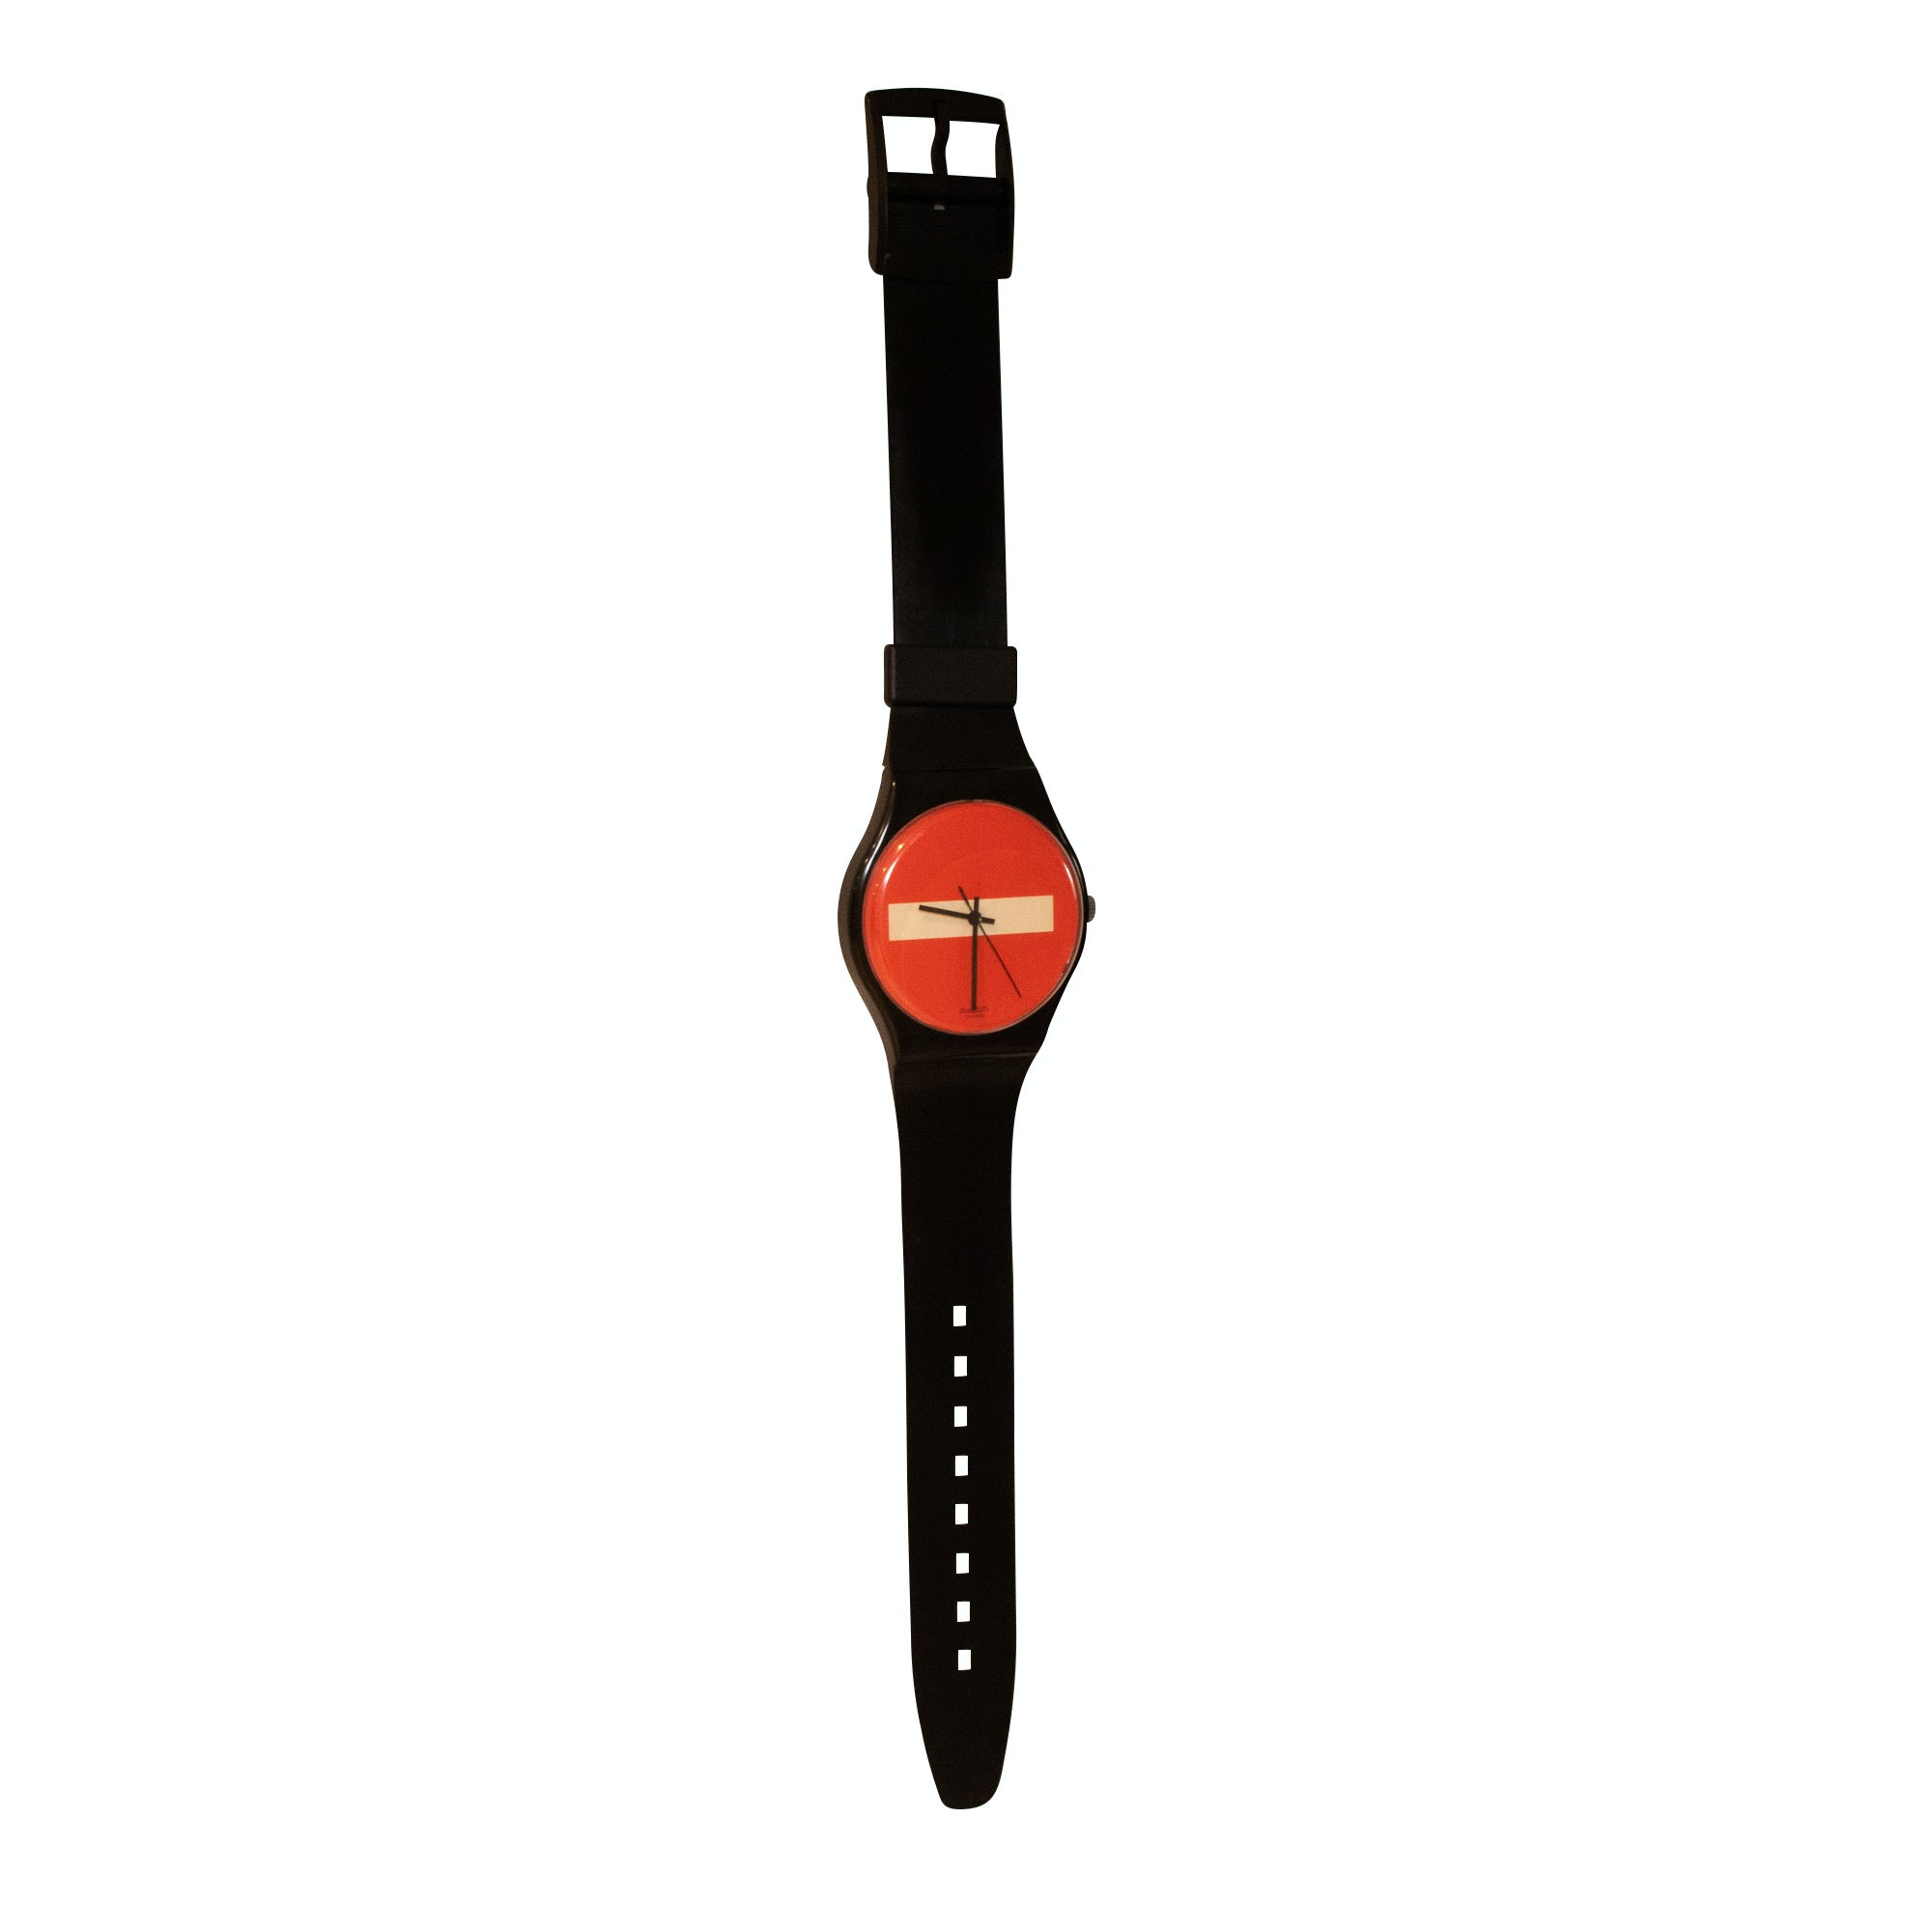 Swatch Wall Hanging Novelty Wristwatch Wall Clock